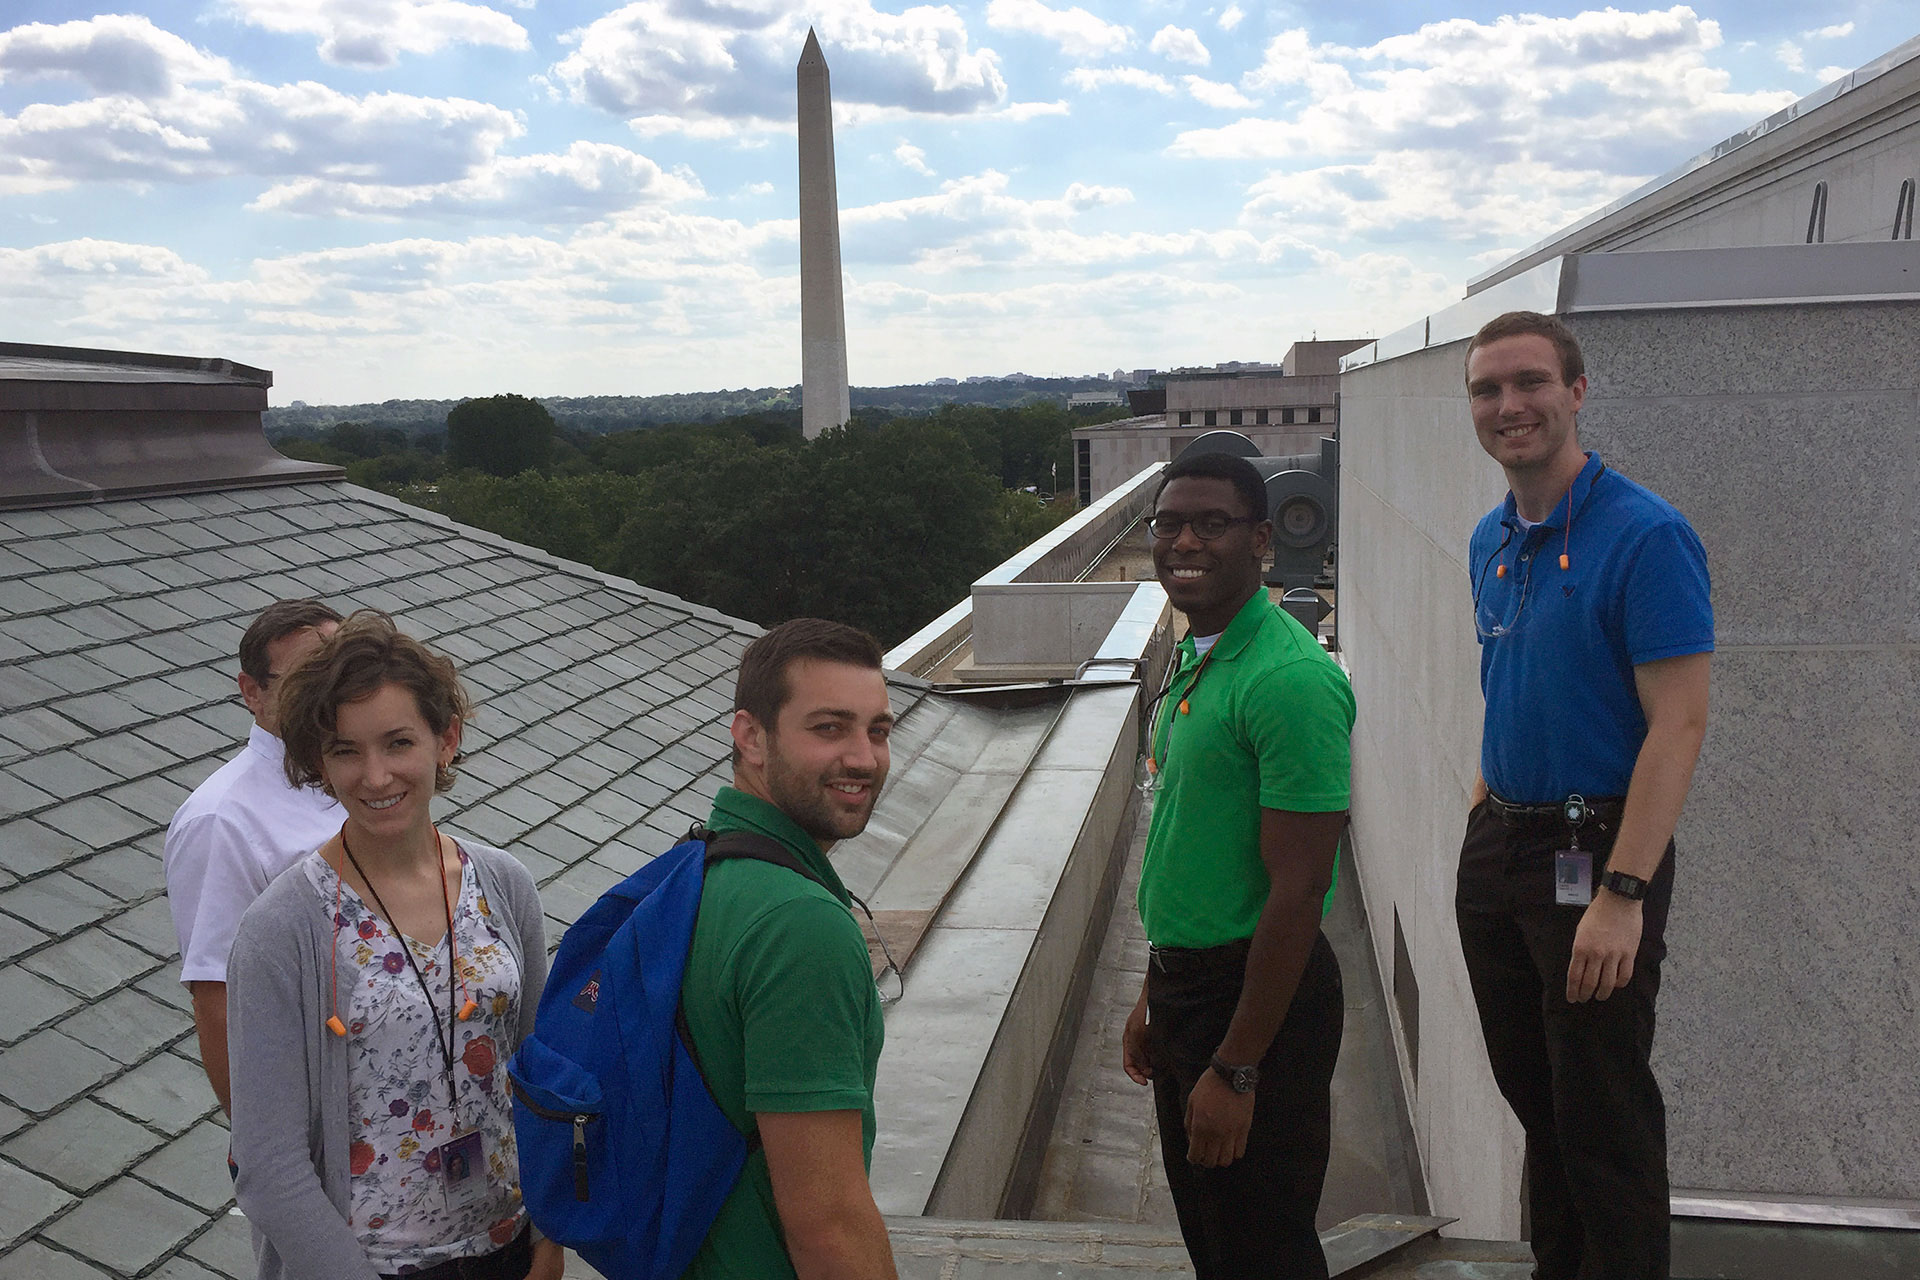 OFMR interns look out at the Washington Monument